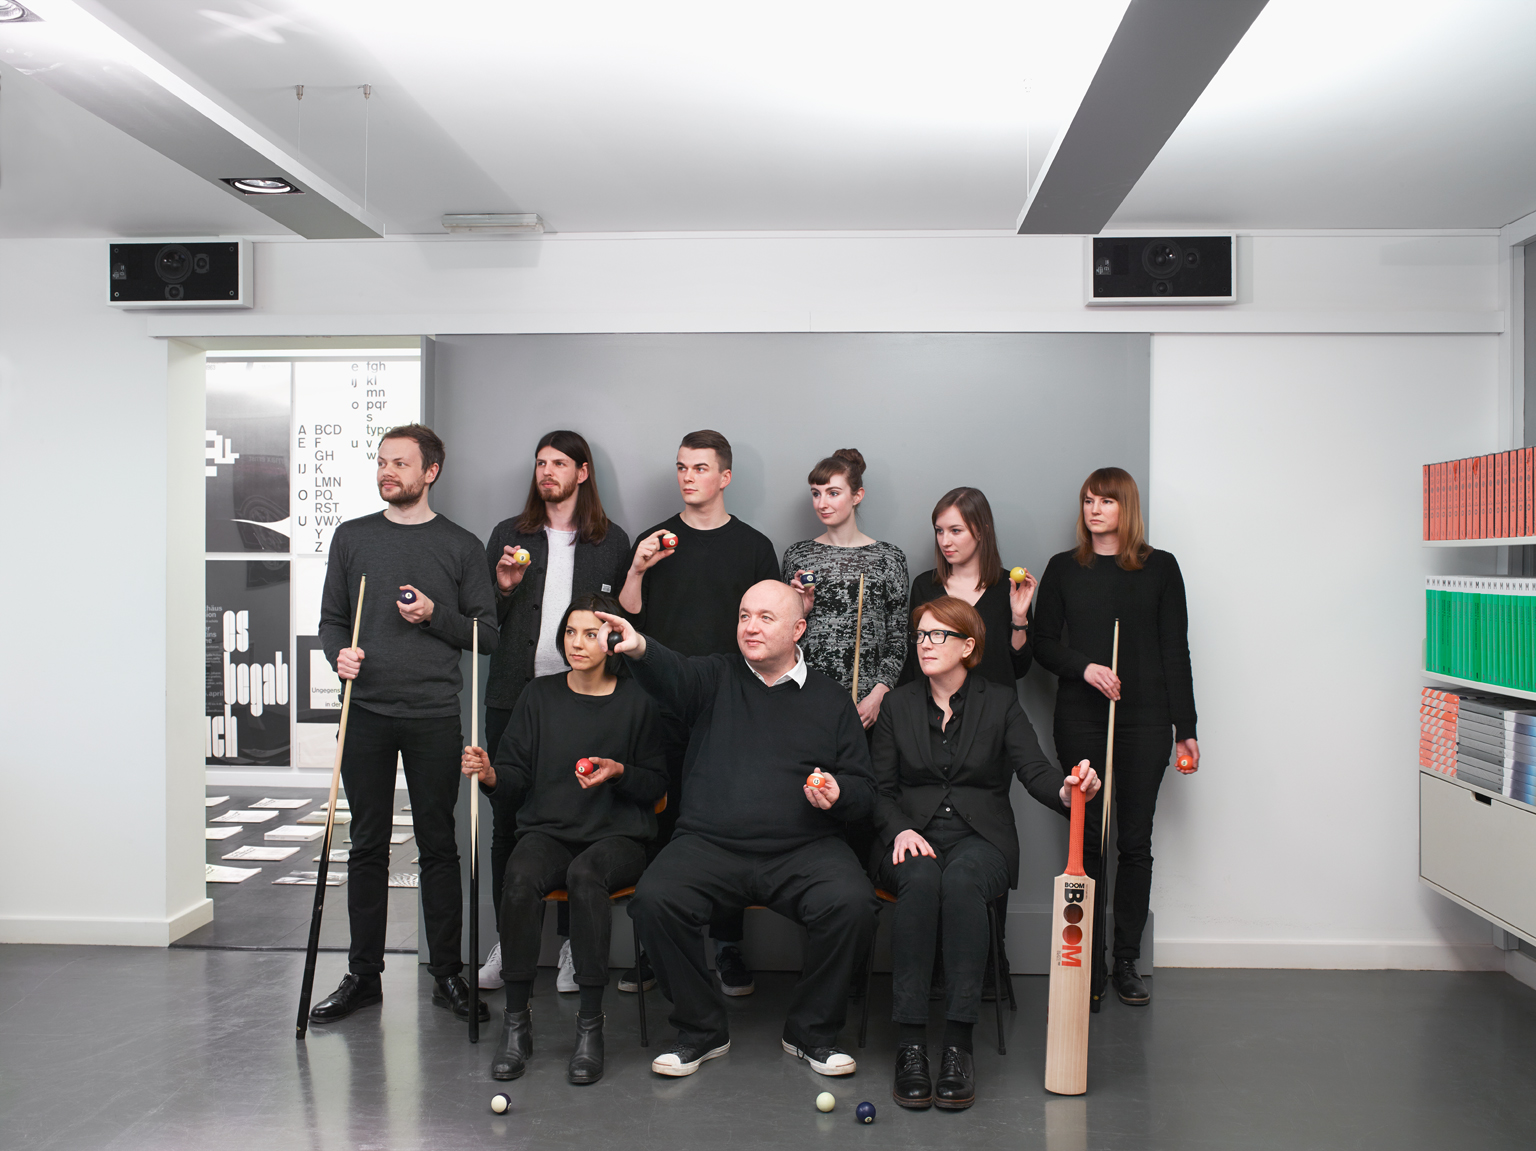 The current Spin and Unit Editions team. Back row, left to right: Sam Stevenson, Callin Mackintosh, Jack Grafton, Anna Souter, Rachel Dalton and Linne Jenkin. Front row, left to right: Claudia Klat, Tony Brook and Patricia Finegan. The studio name was inspired by Brook's obsession with cricket and, in particular, a fascination with Yorkshire spin bowler Hedley Verity who played for England in the 1930s.